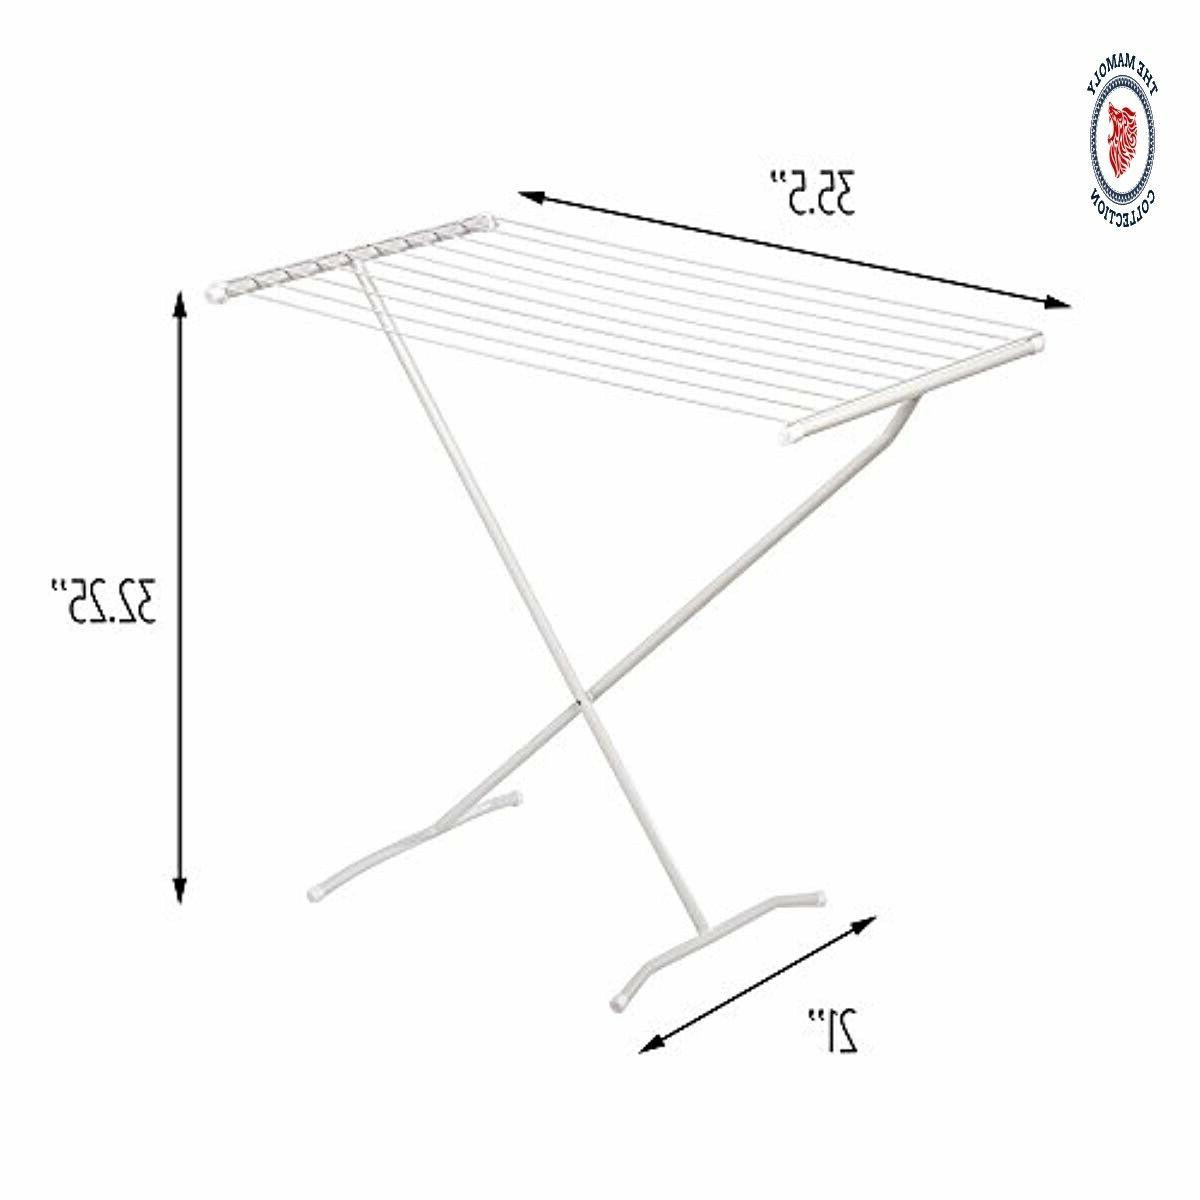 Clothes Drying Laundry Dryer Folding Indoor Hanger Portable